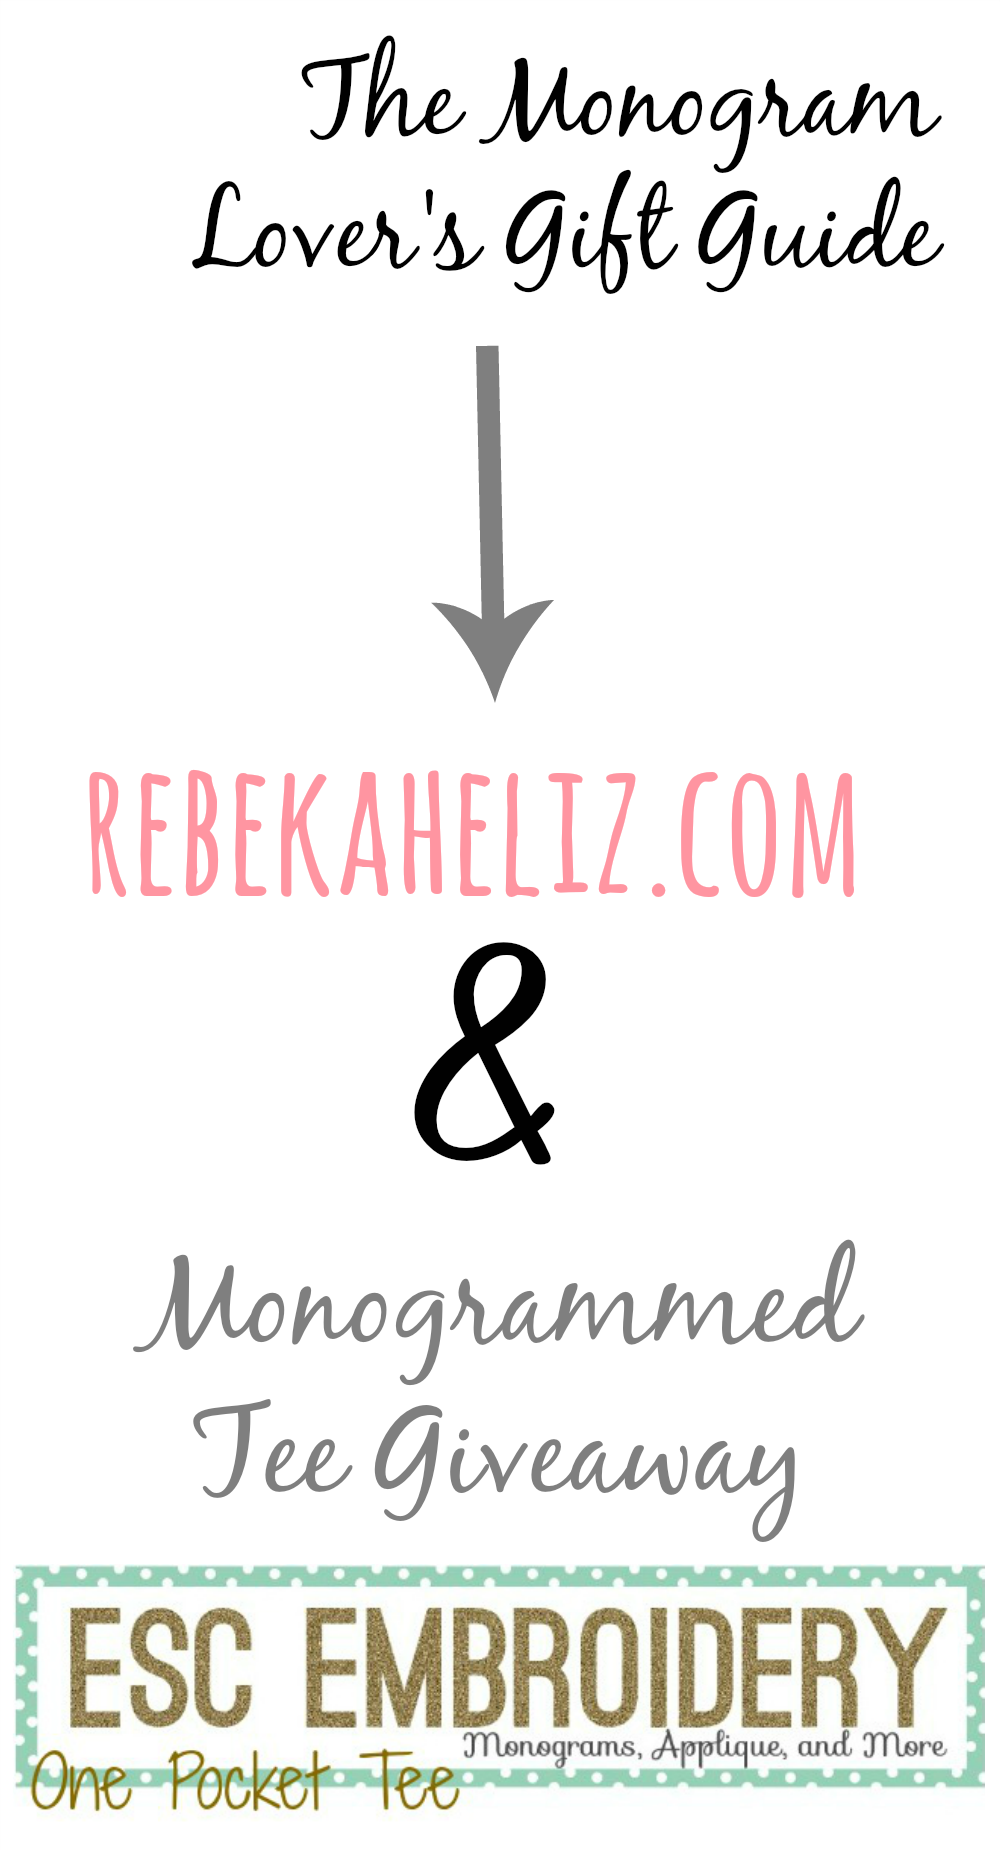 monogram lover's gift guide, giveaway, monogram giveaway